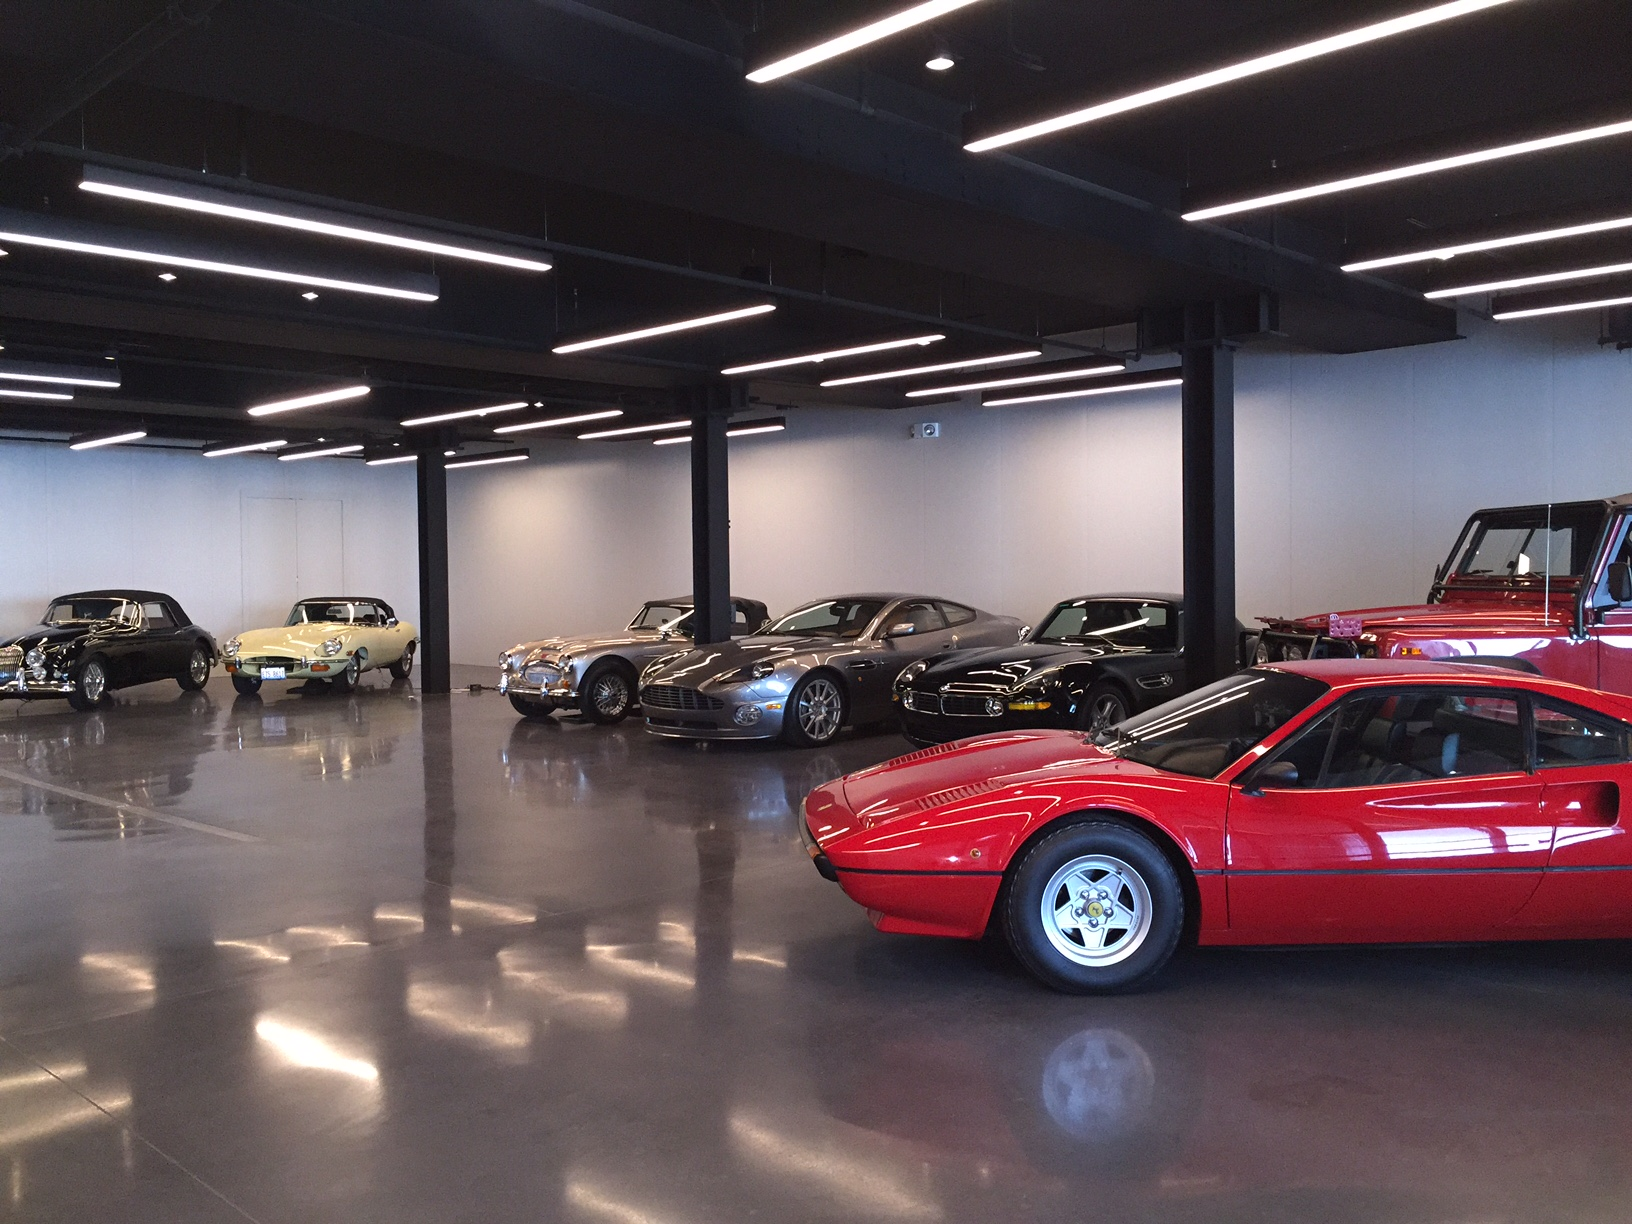 In Progress Photograph of The Gallery for a Vitage Car Collector in Chicago